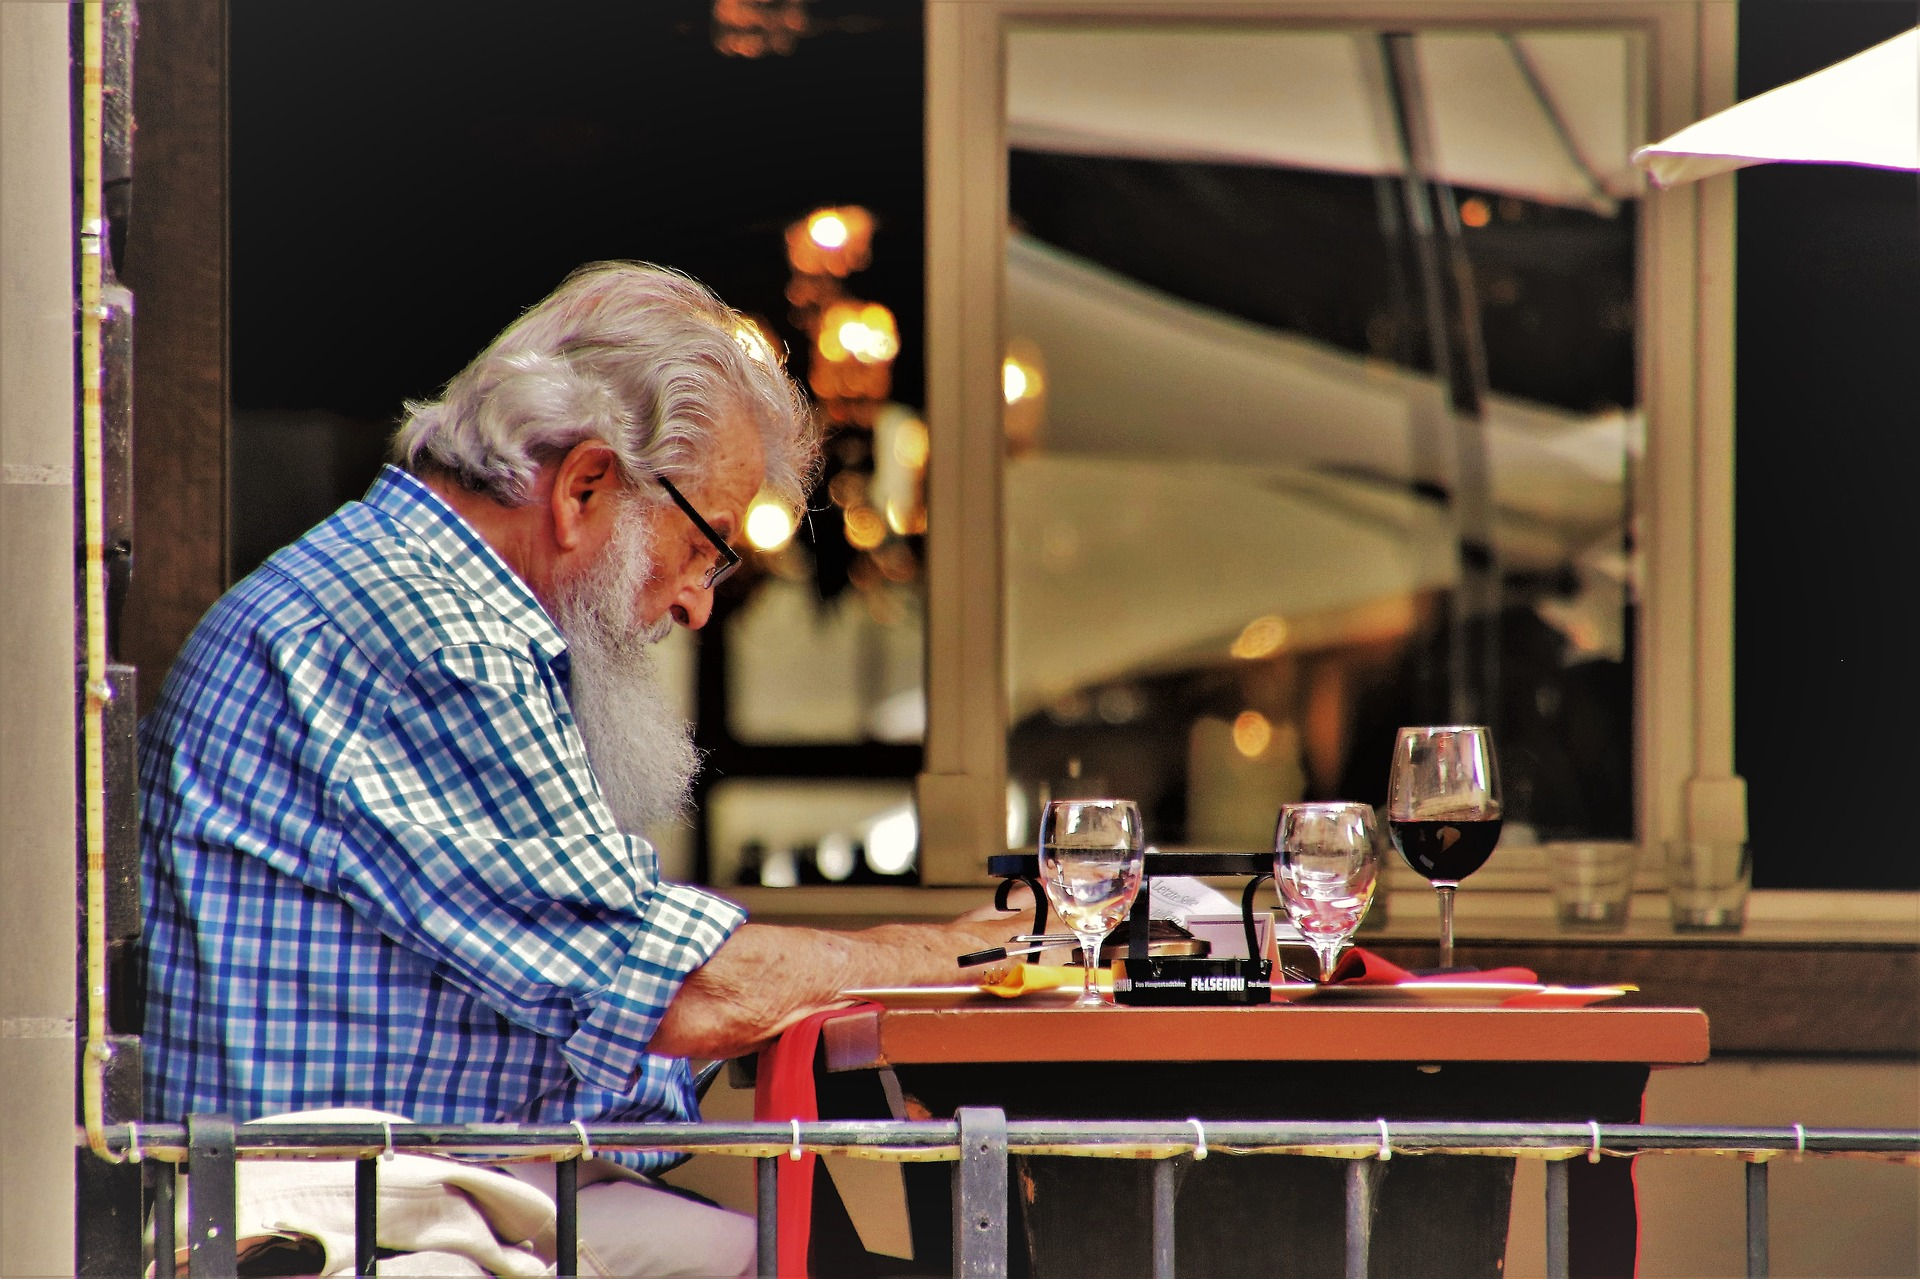 Alcohol Abuse in the Elderly: A Growing Problem